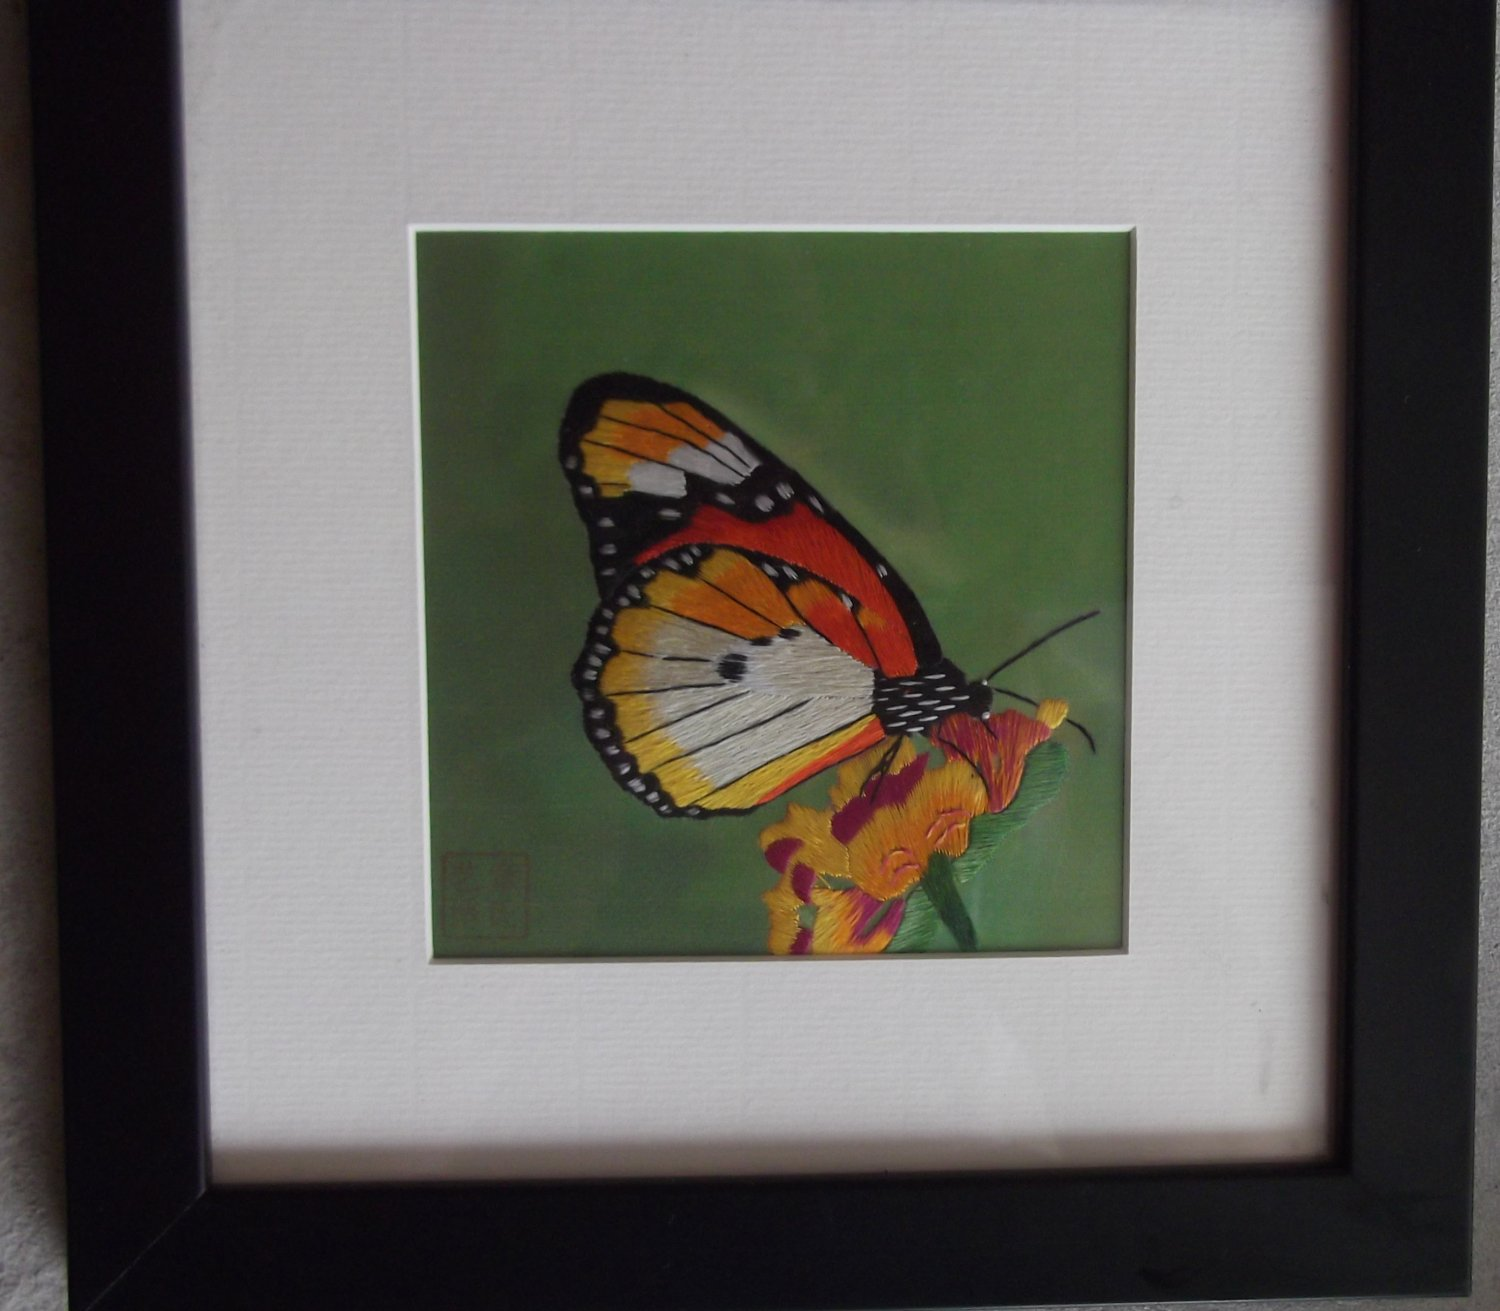 An Orange and White Butterfly